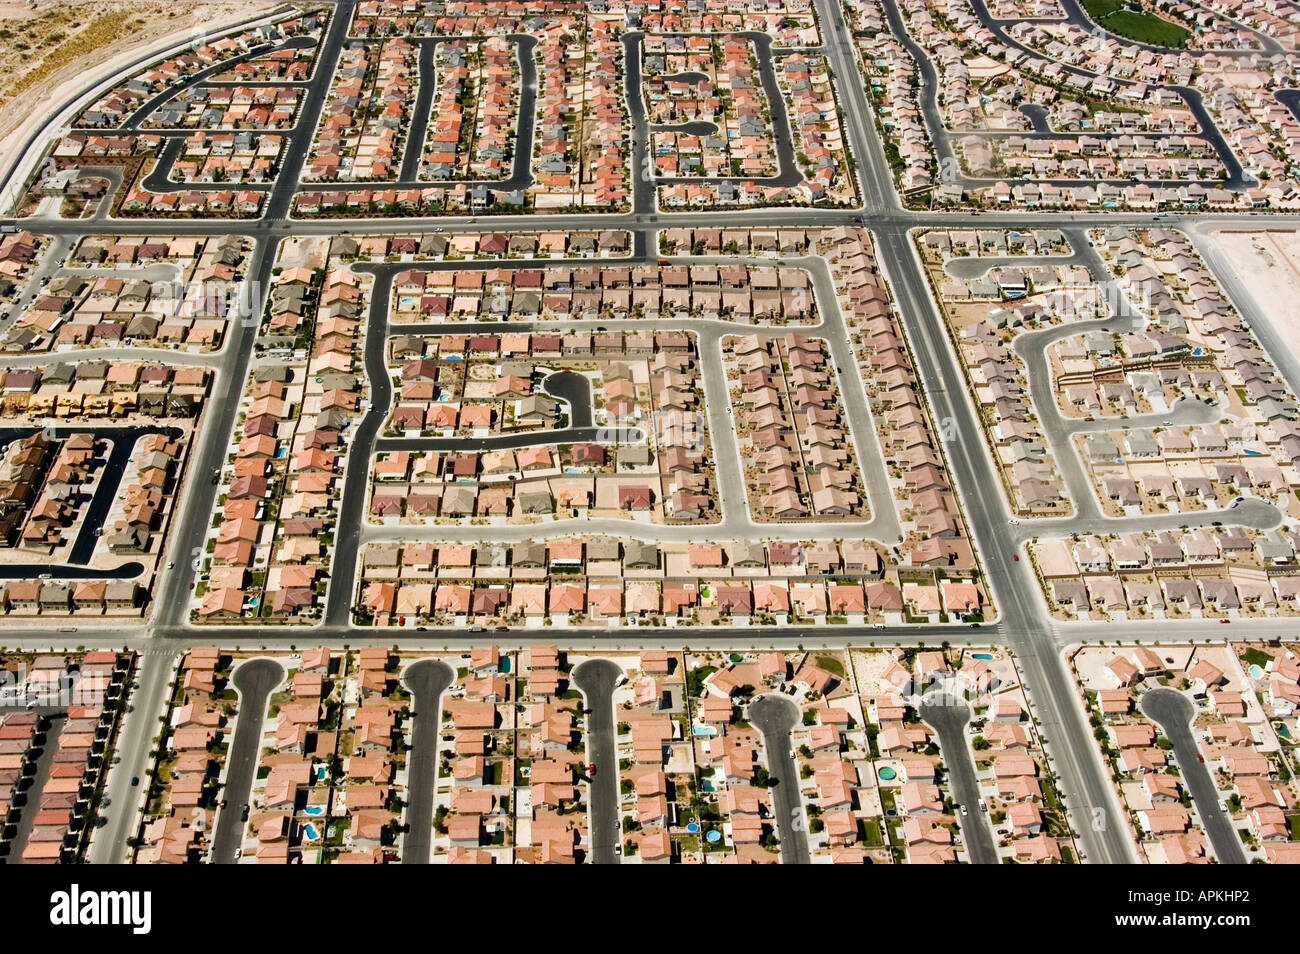 Aerial view of urban growth and sprawl in Las Vegas Nevada NV - Stock Image